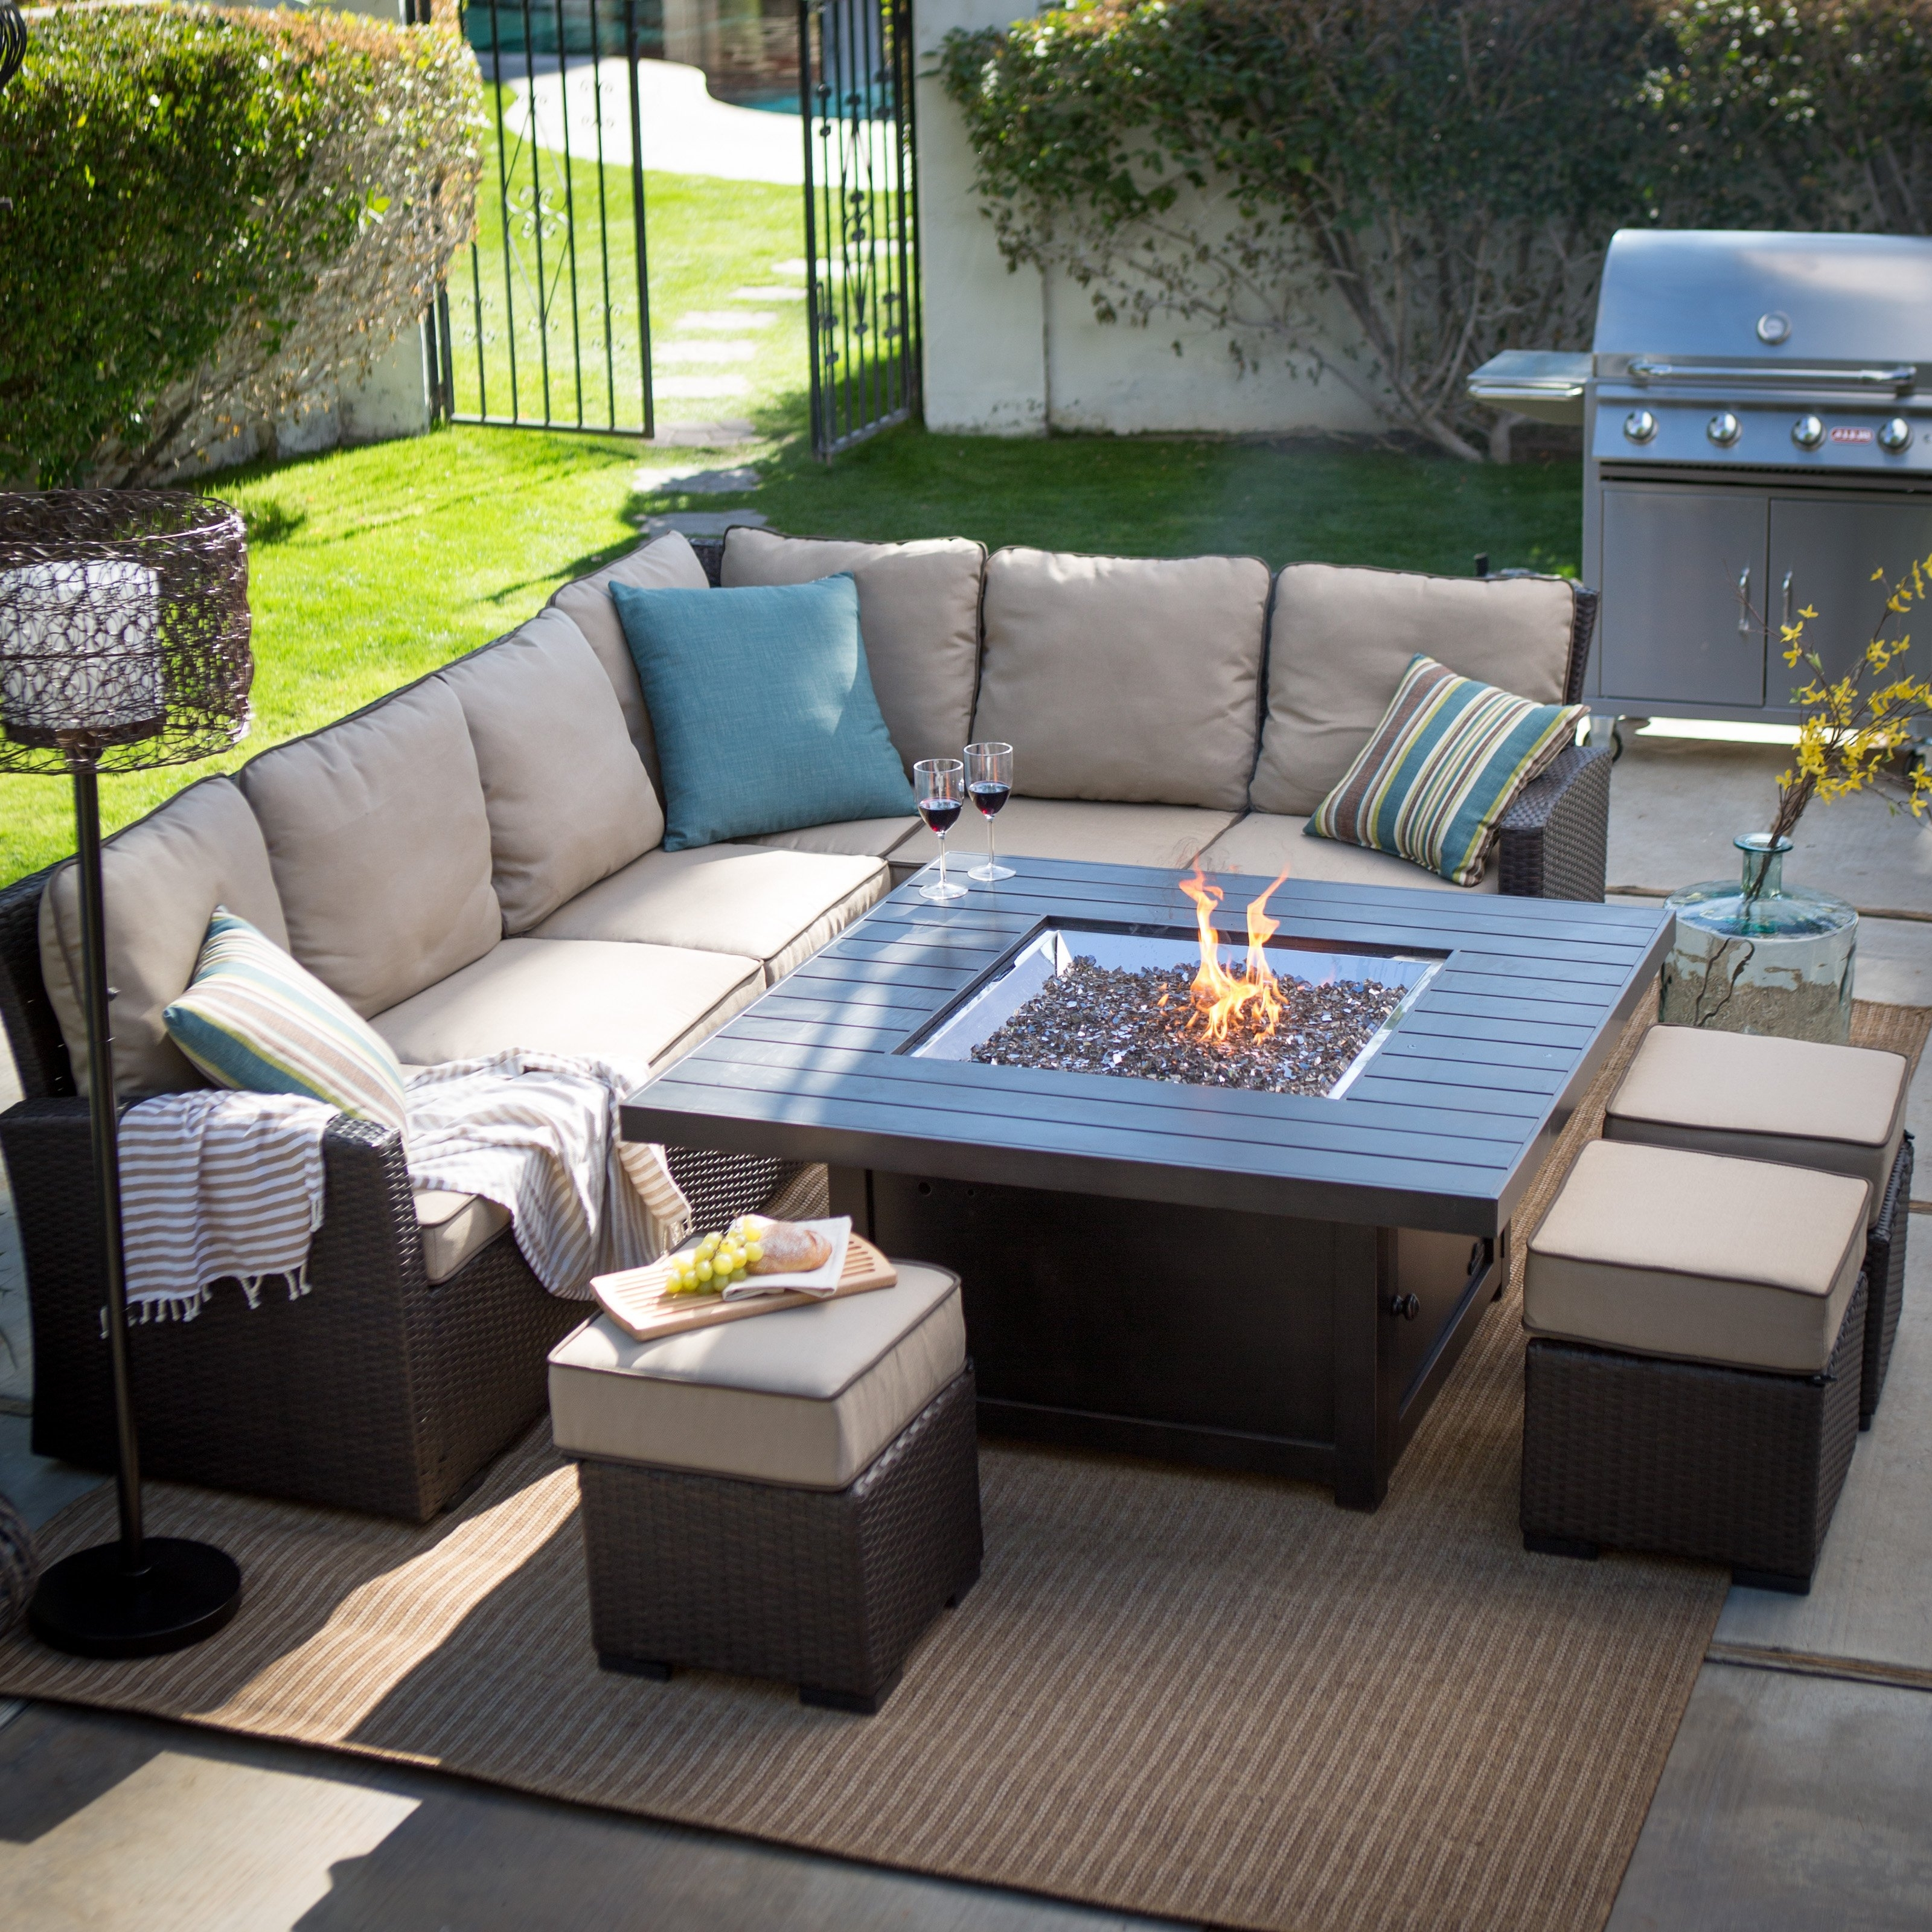 Dining Table With Fire Pit In Middle Verona Height Propane Patio For Recent Patio Conversation Dining Sets (View 5 of 20)